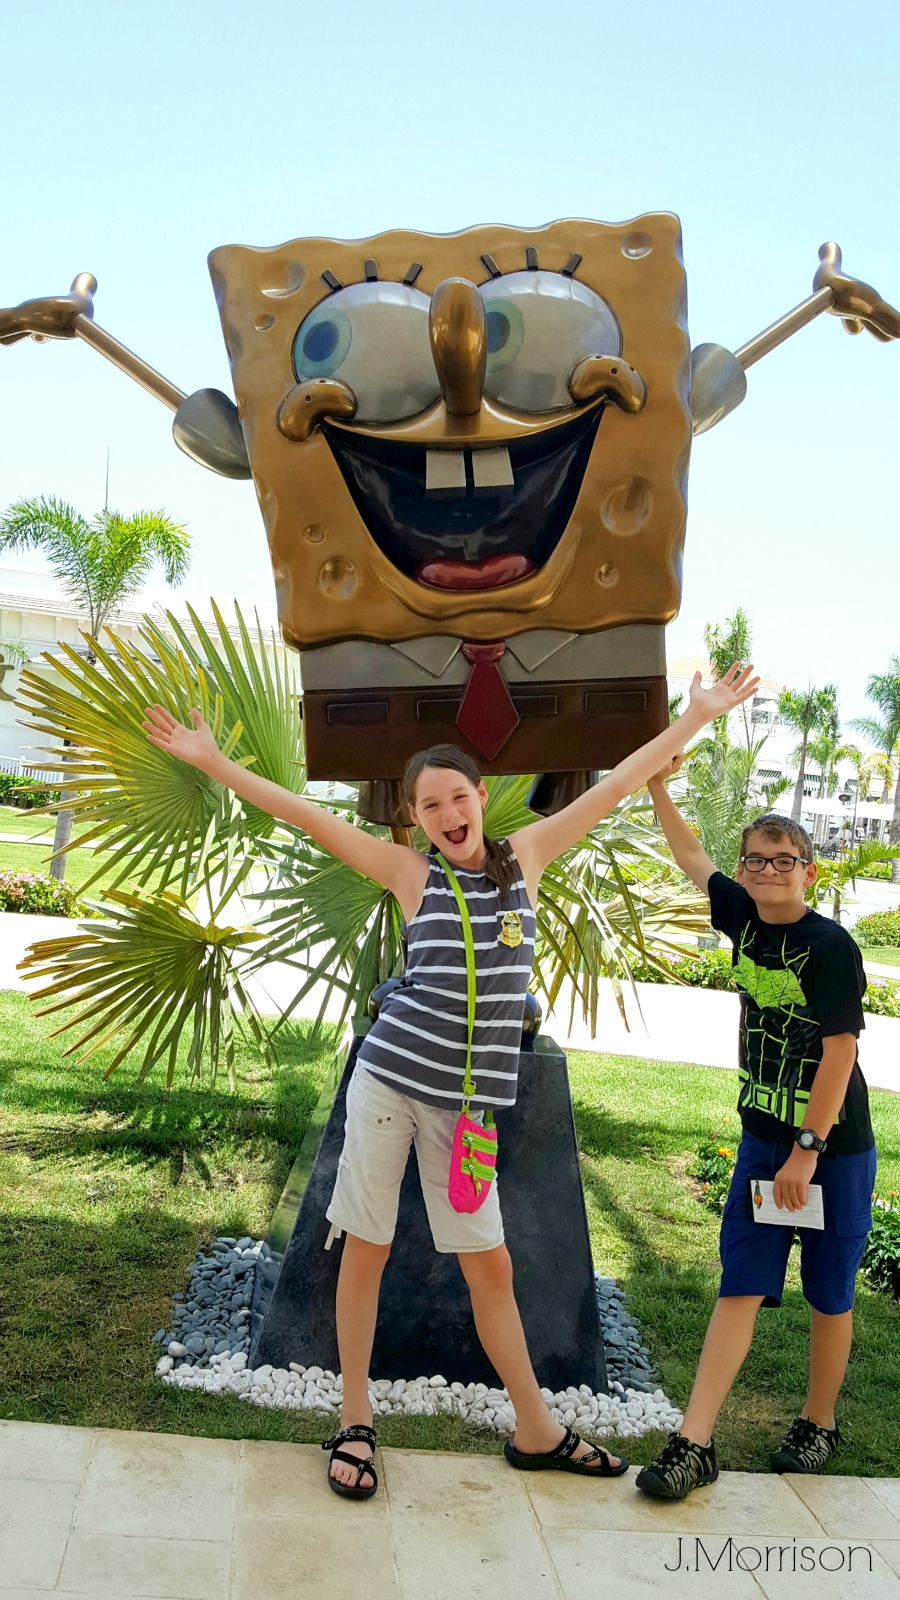 Family fun at the Nickelodeon Resort in Punta Cana